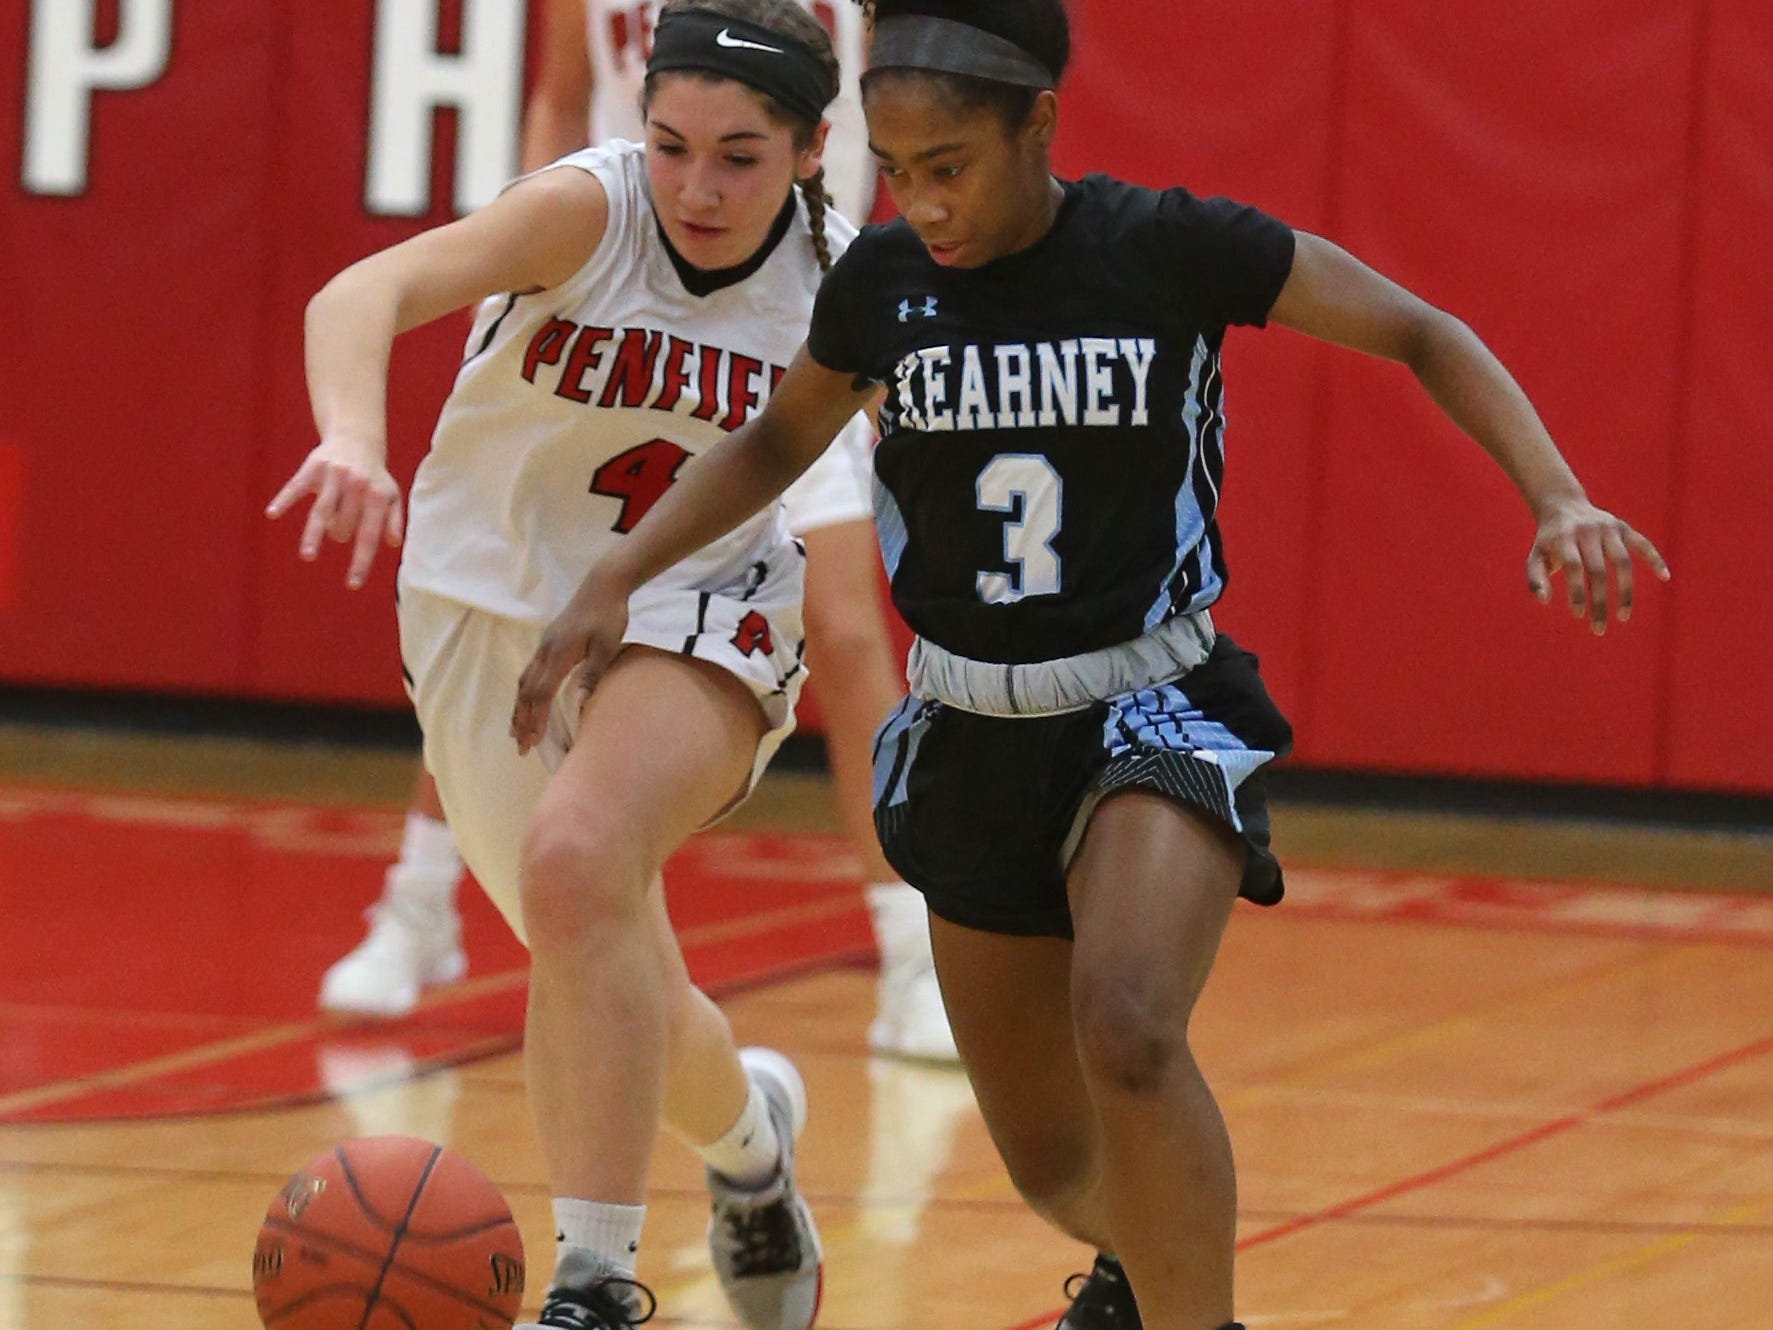 Bishop Kearney's Kaia Goode, right, outraces Penfield's Katie Rinere for a tipped ball during their game Tuesday, Fe. 5, at Penfield High School. Kearney won the matchup 64-51.